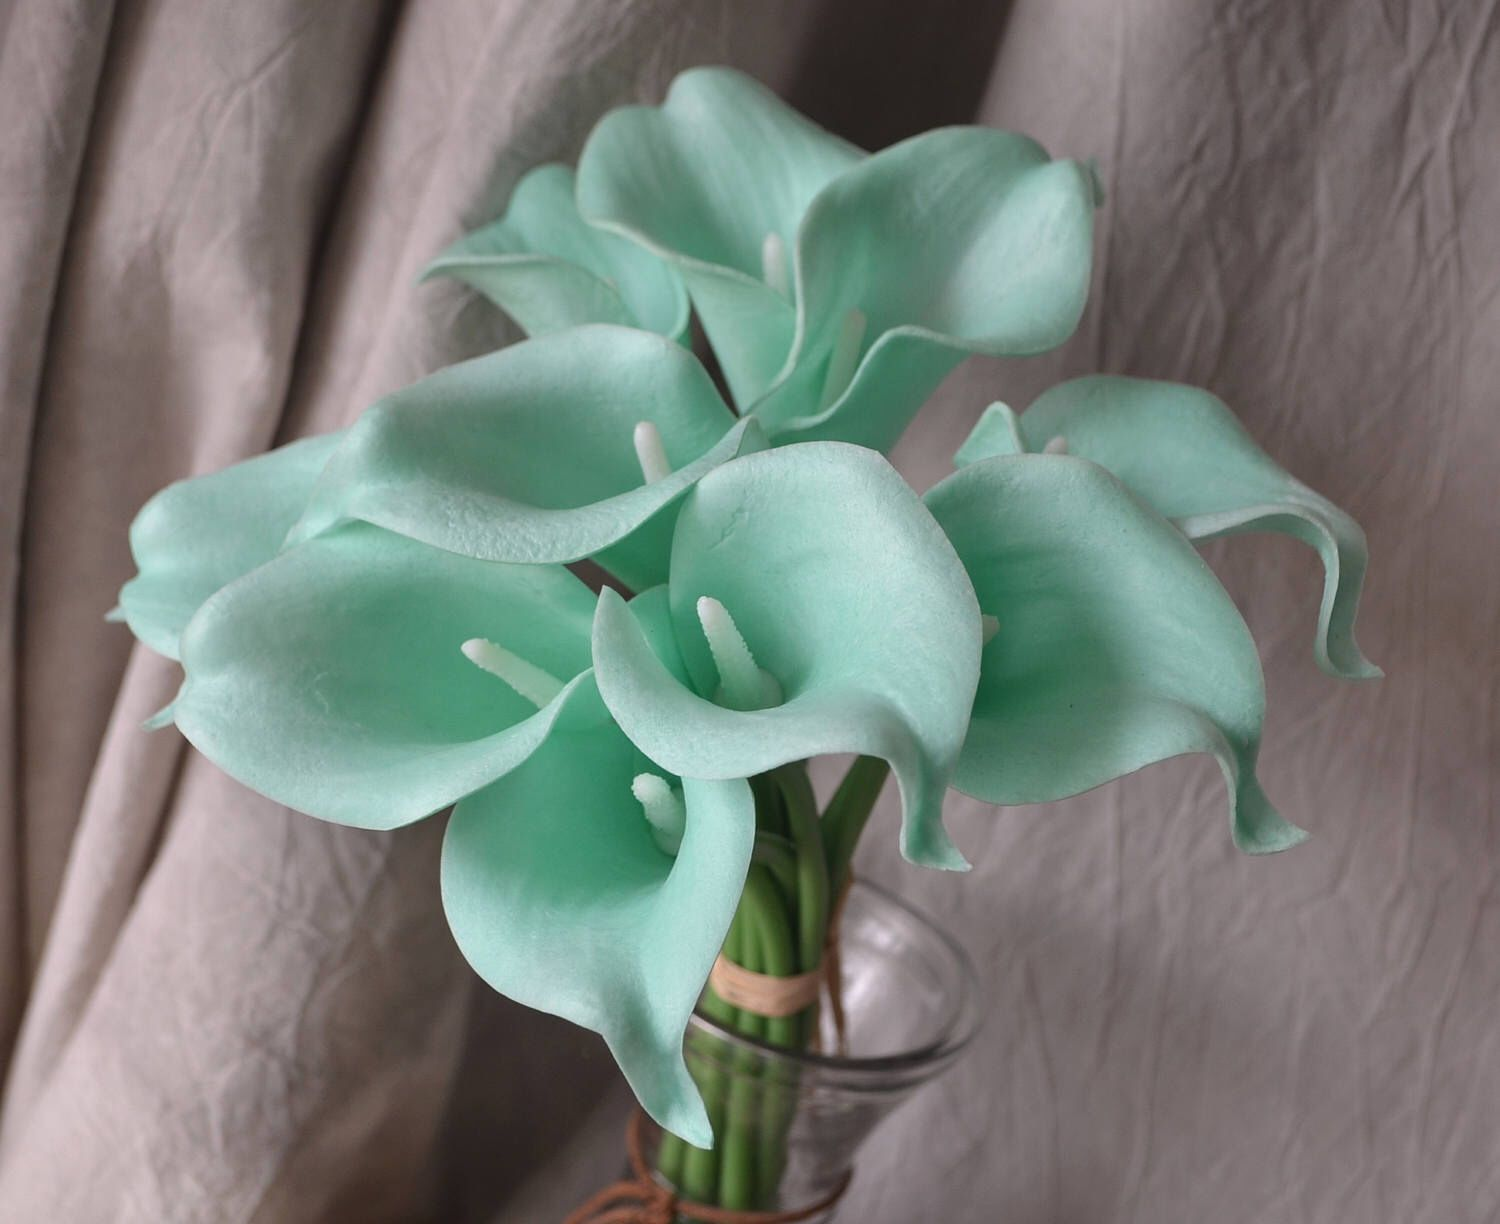 10 Mint Picasso Green Calla Lilies Real Touch Flowers Diy Etsy In 2020 Mint Green Wedding Bouquets Real Touch Flowers Diy Calla Lily